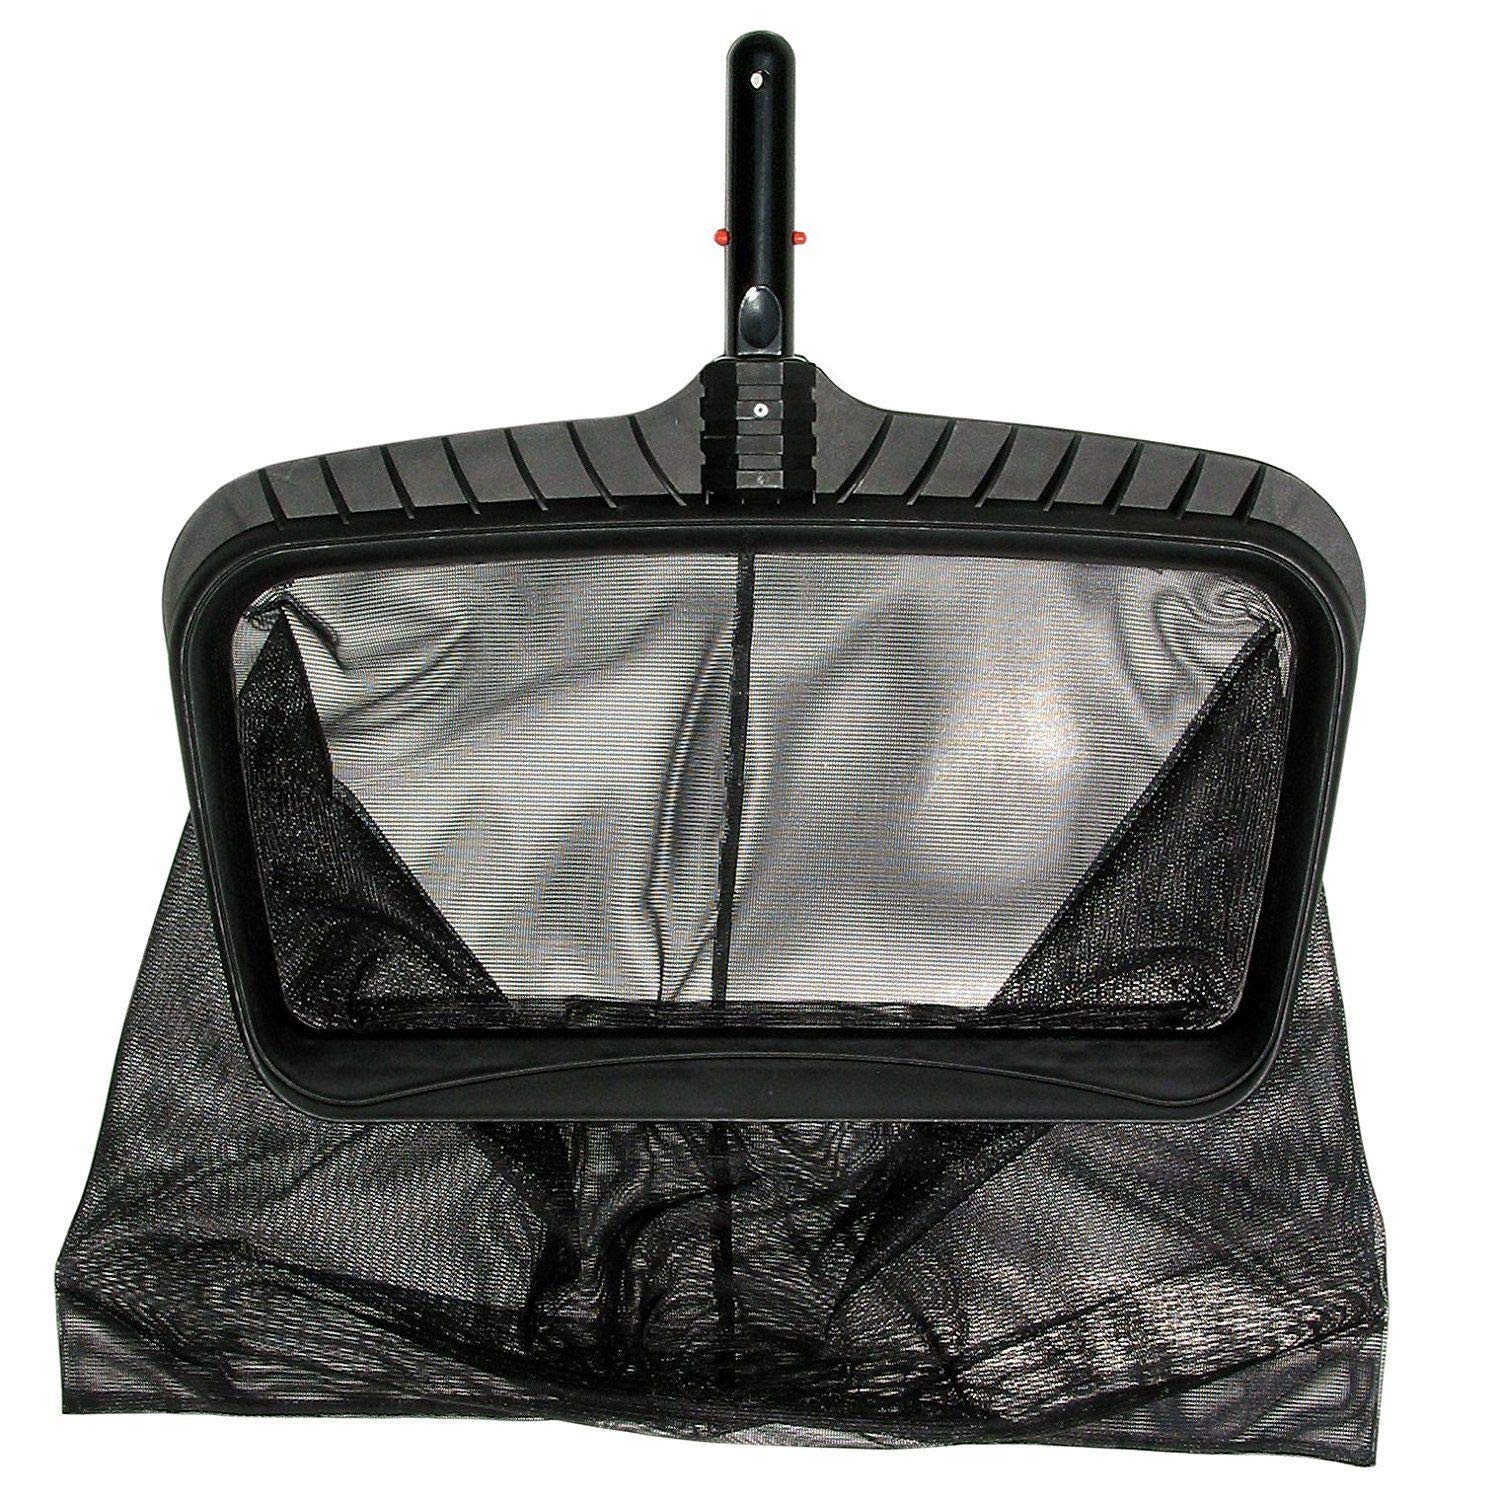 Swimming Pool Leaf Rake Net Skimmer Catcher Bag Cleaning Head Attachment Cleaner